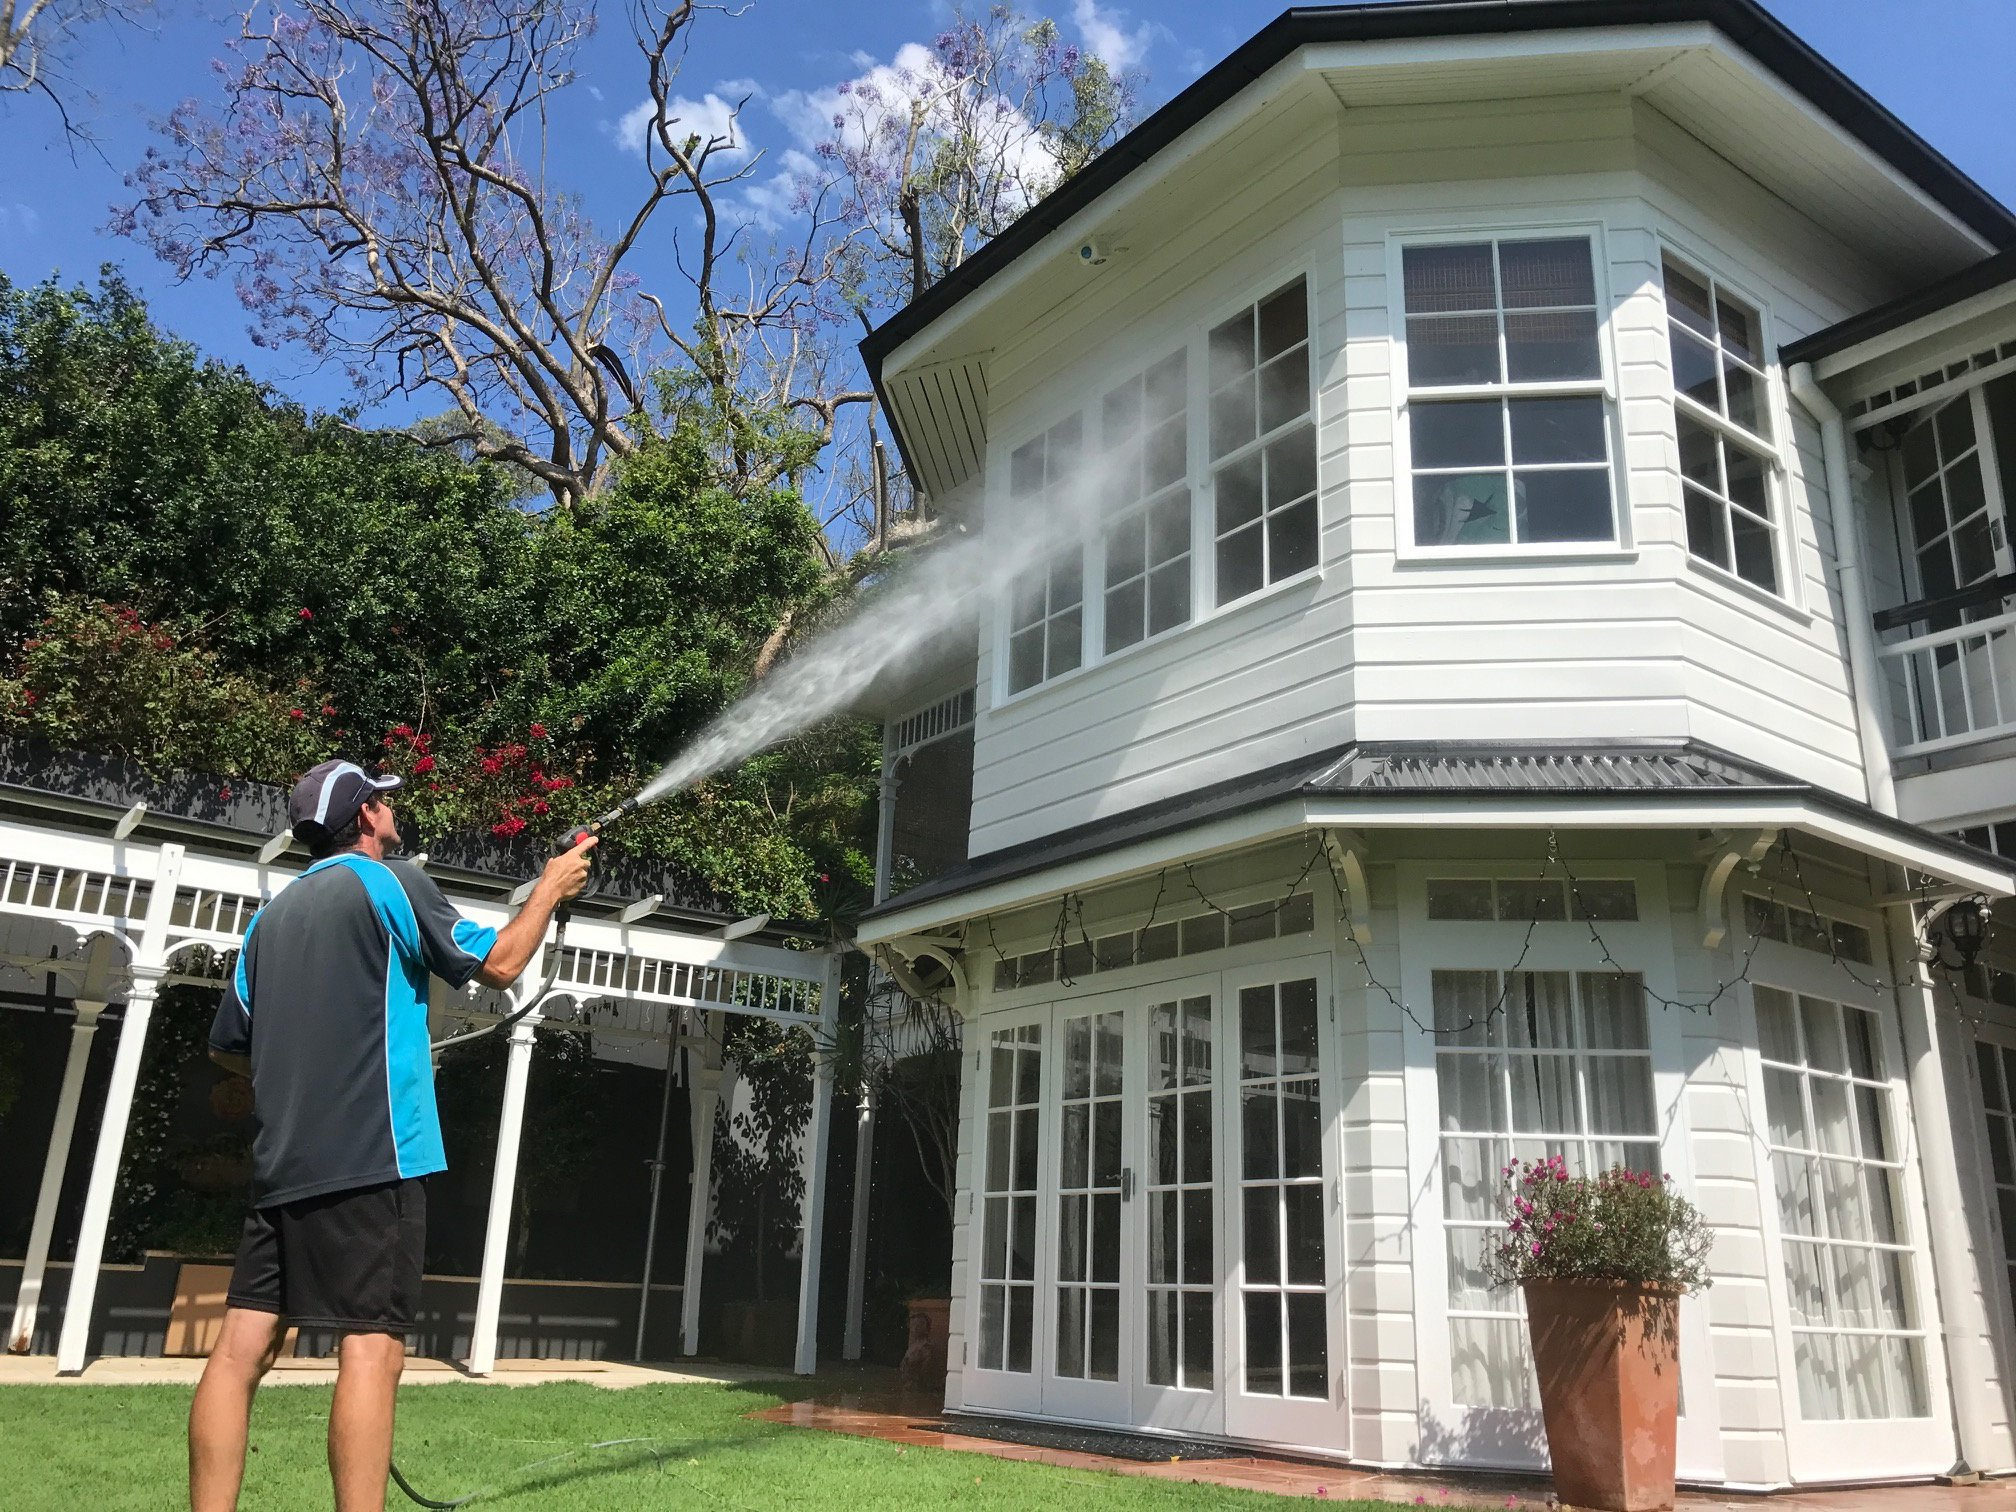 Burpengary Roof washing services